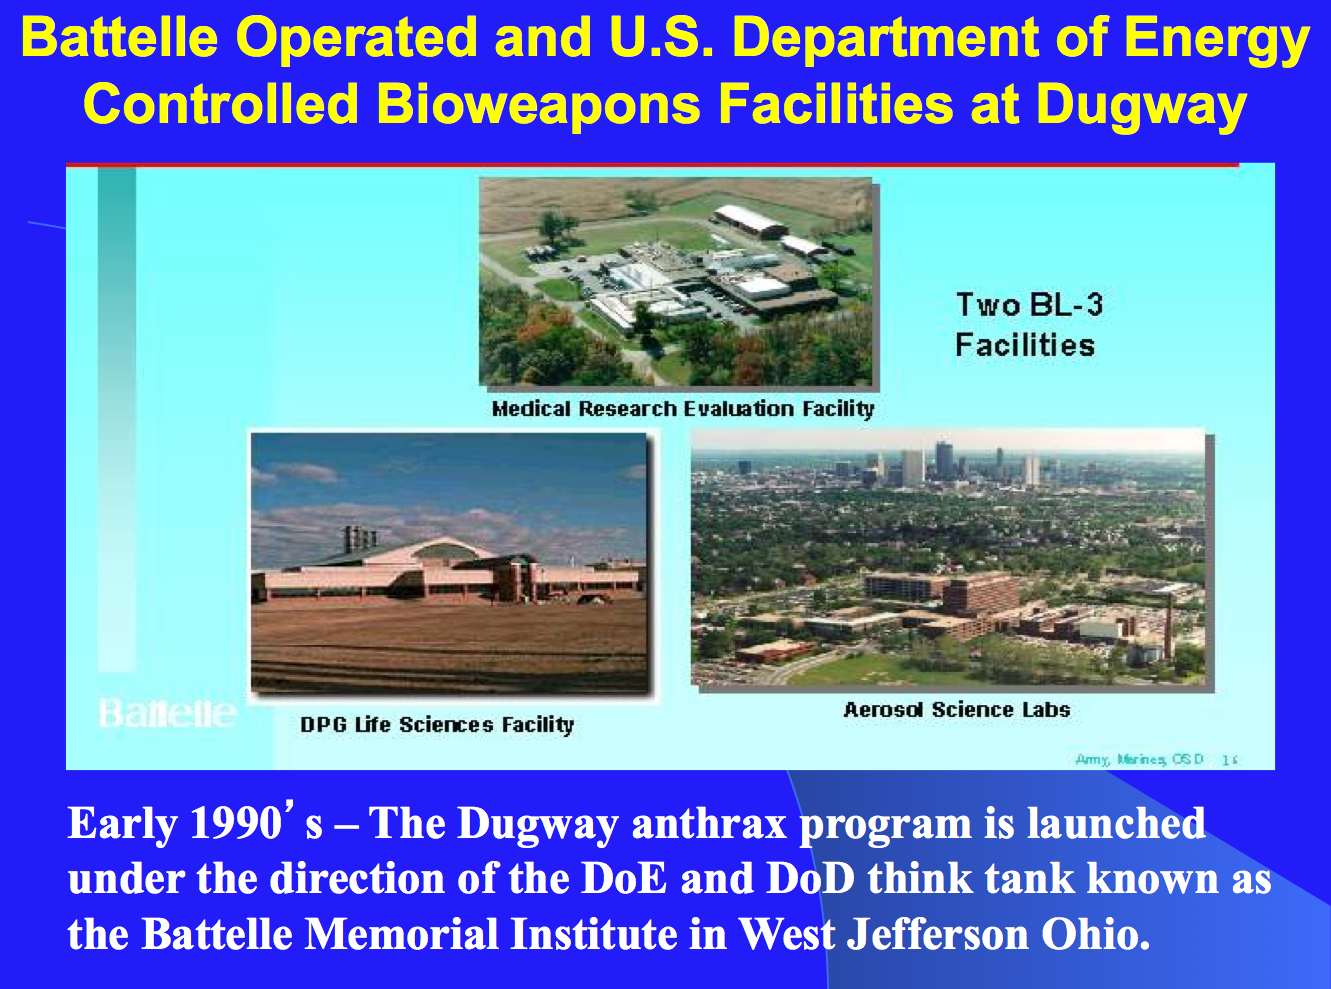 Battelle US DoE Dugway Anthrax Facilities